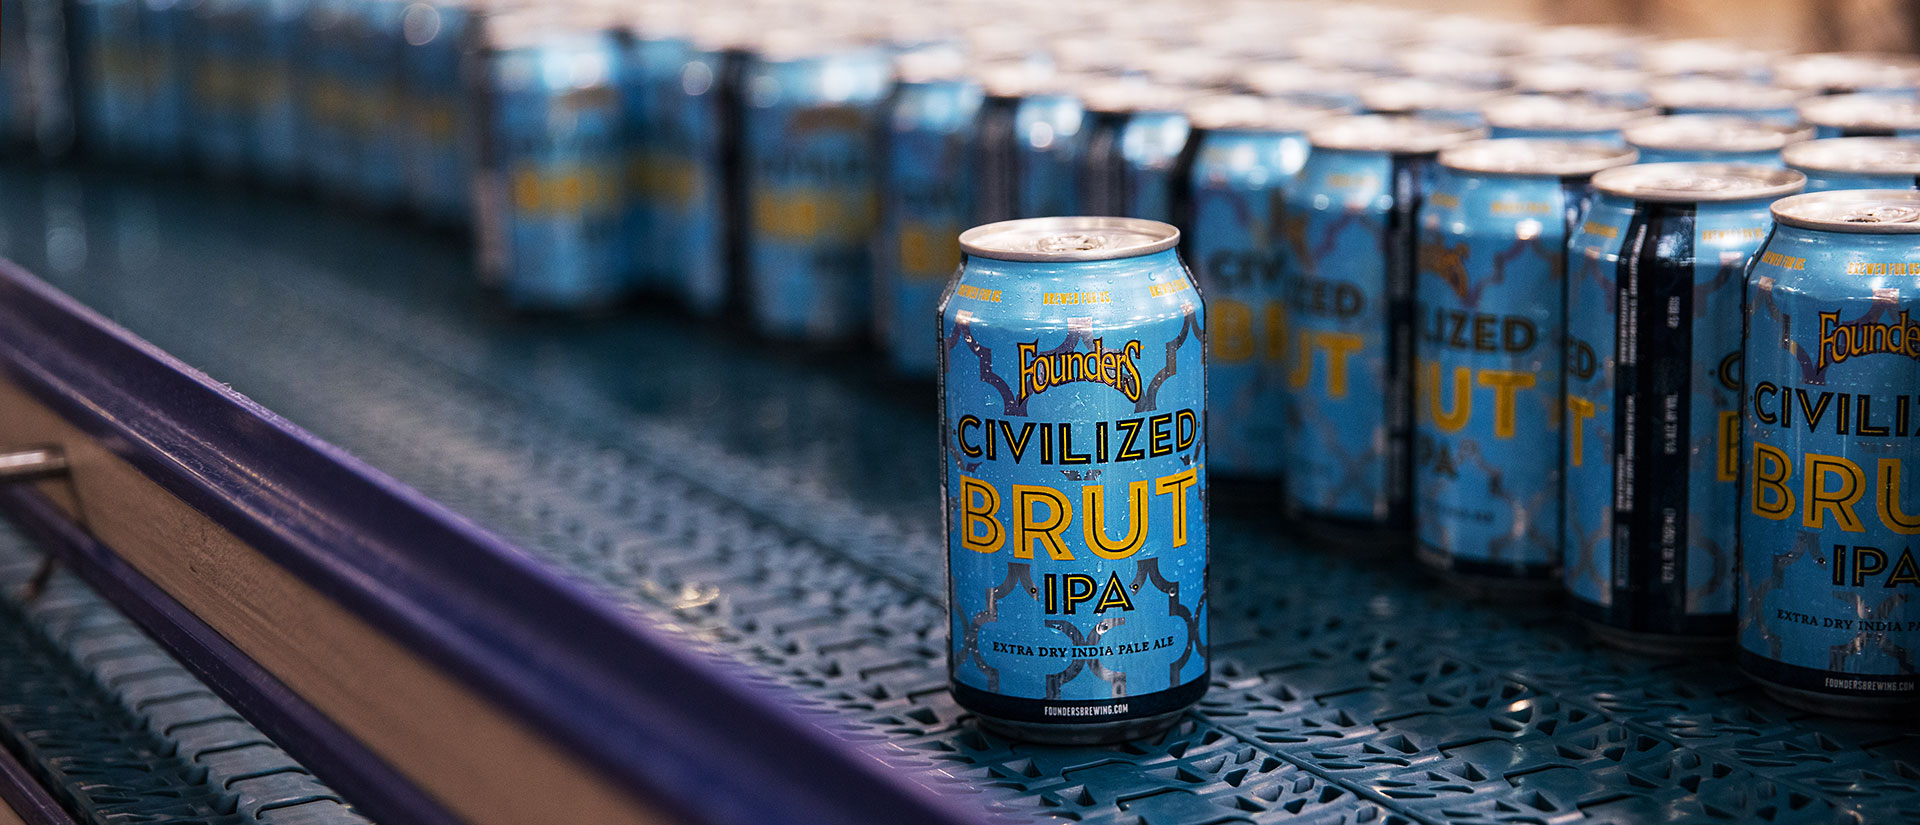 Cans of Founders Civilized Brut IPA